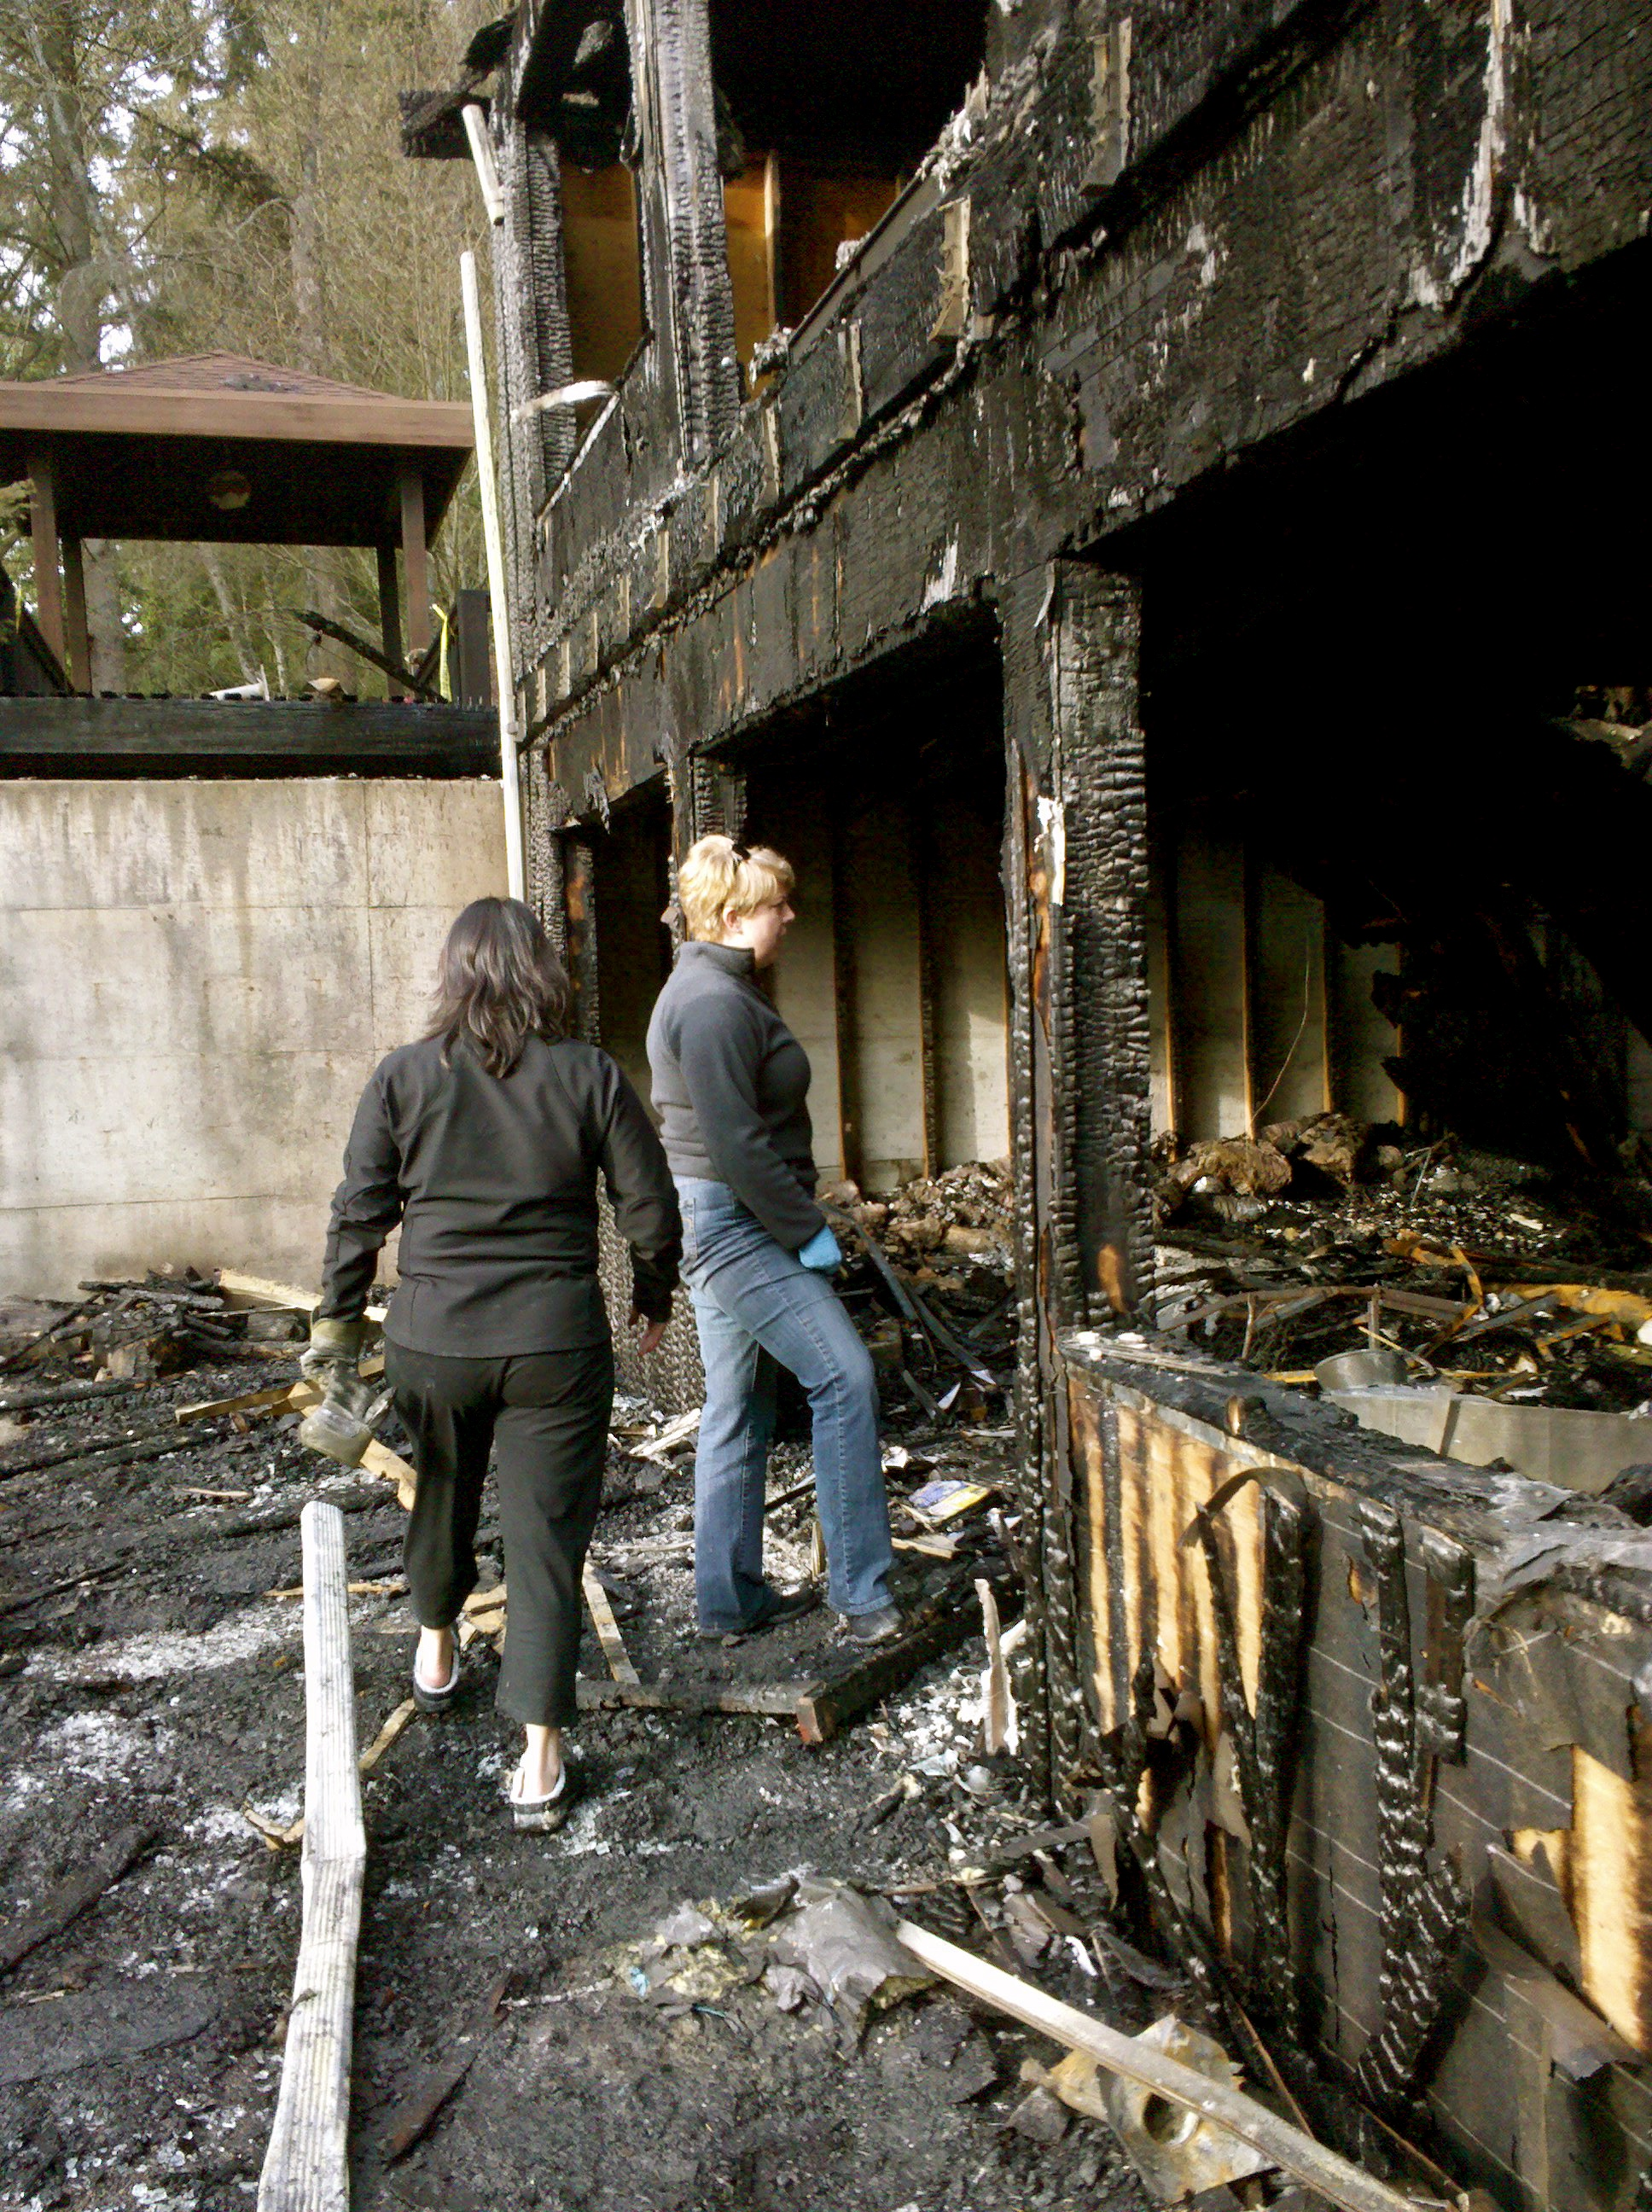 Kristina Bass (left, in black) with friend Kristen S. a day or two after the Edmonds Fire. Foto by William Bass.